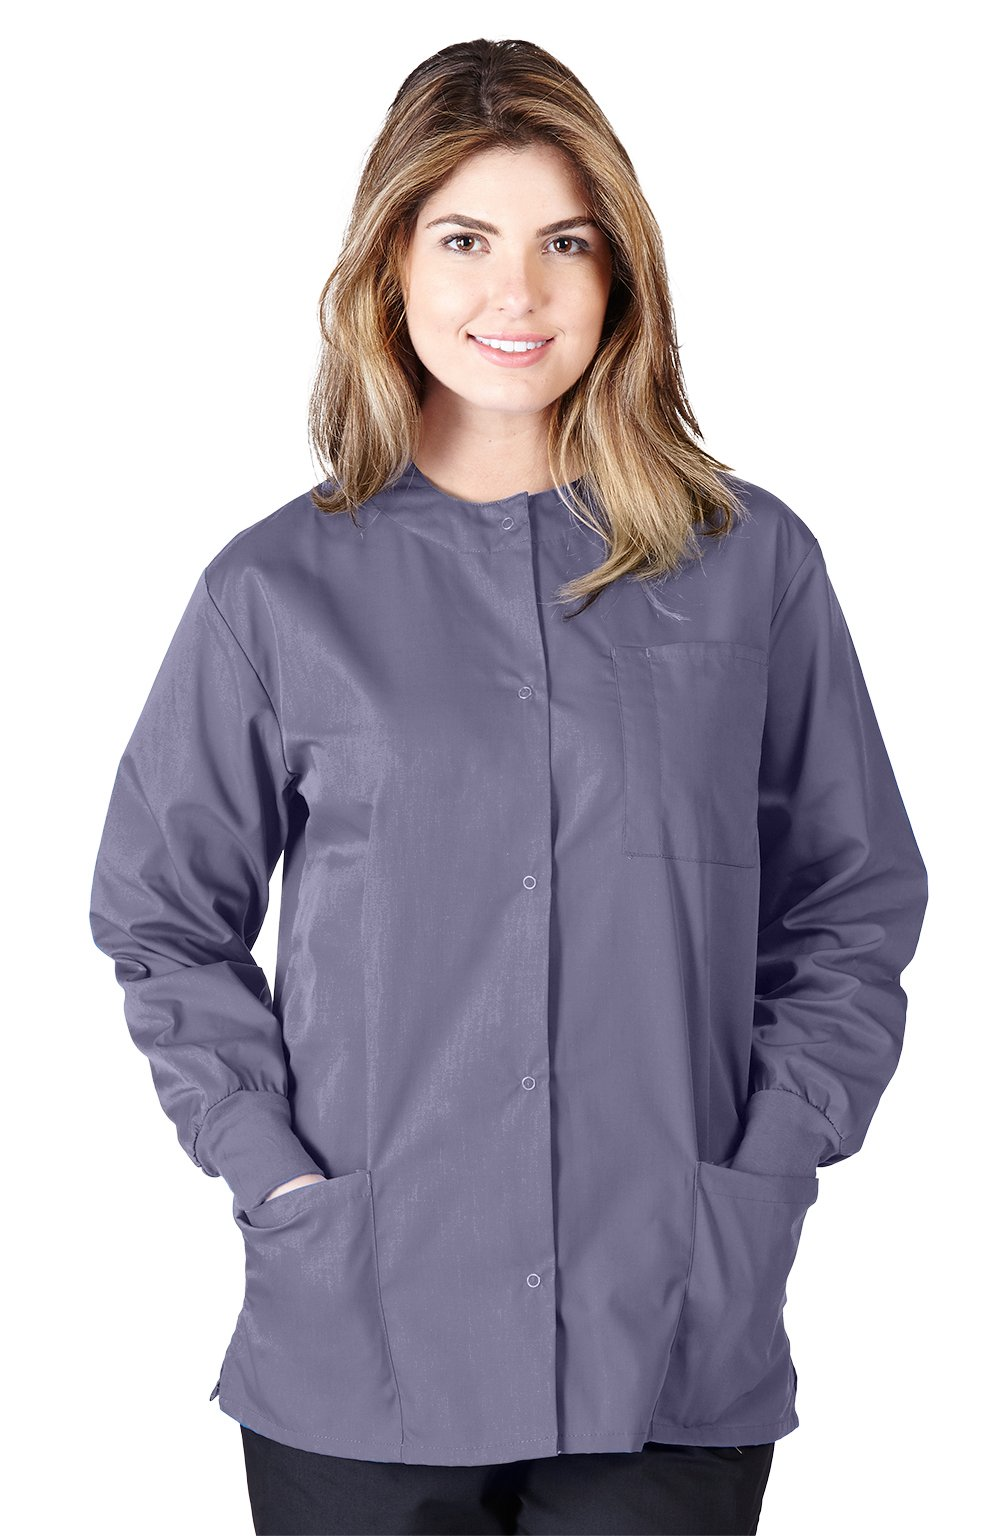 Natural Uniforms Women's Scrub Warm Up Jacket (Plus Sizes Available) (XX-Large, Charcoal)